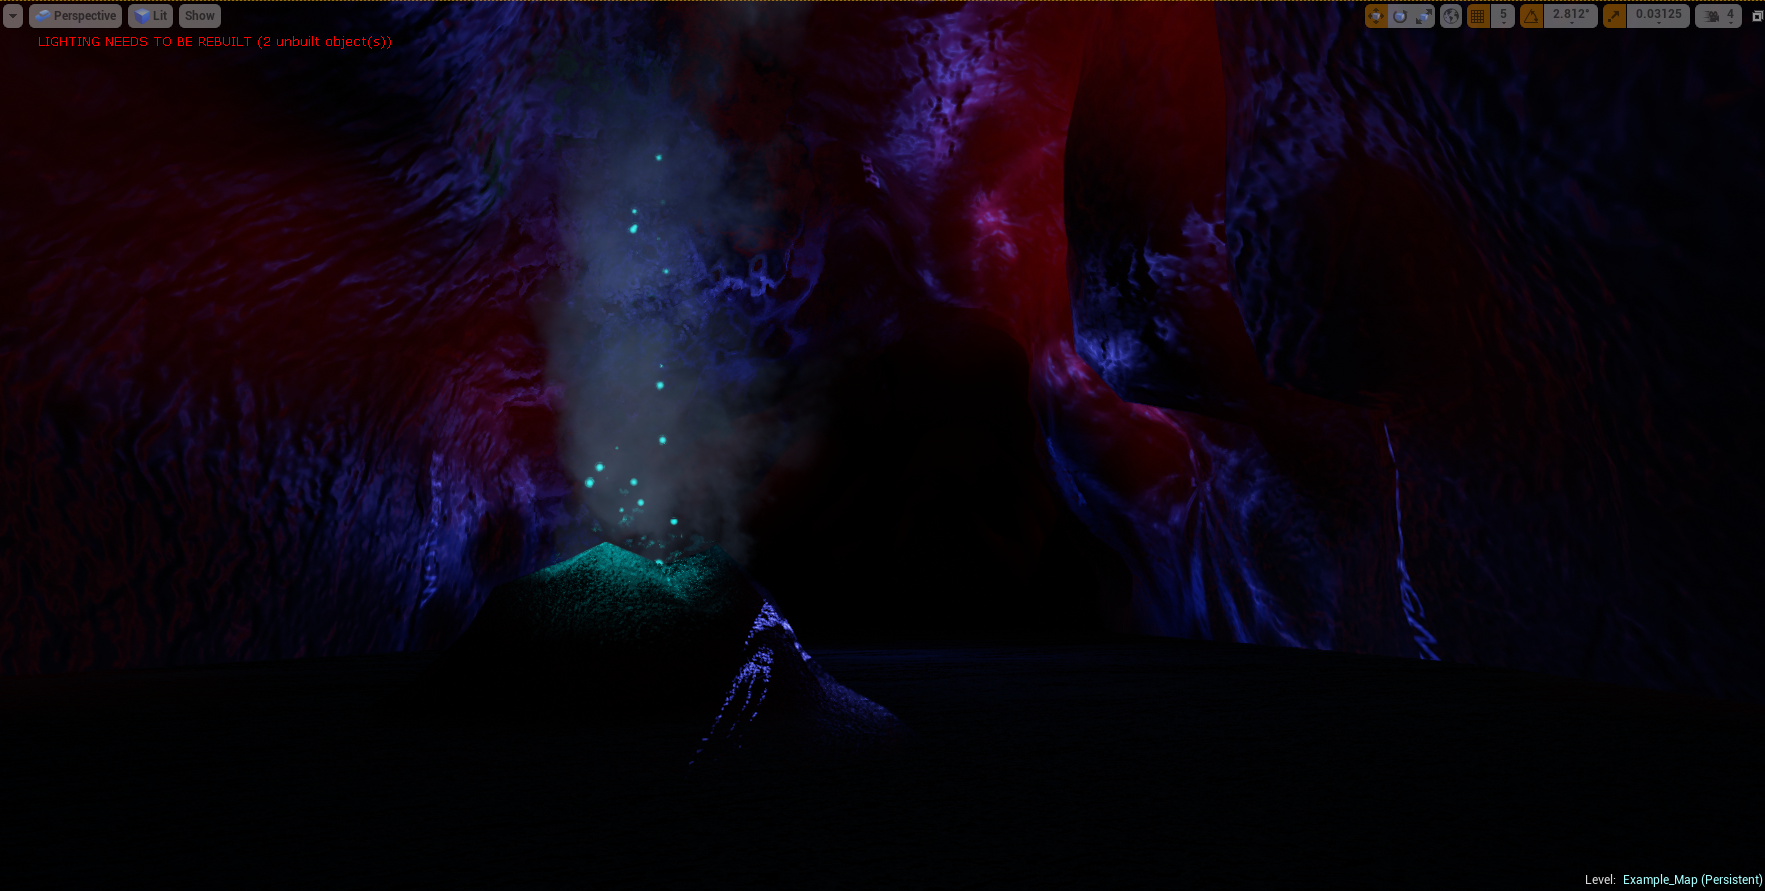 Subterranean flooded cave hallway, complete with hot-gas vent and rippling light reflection on the walls.  One of Xeno's many early in-game concept designs.